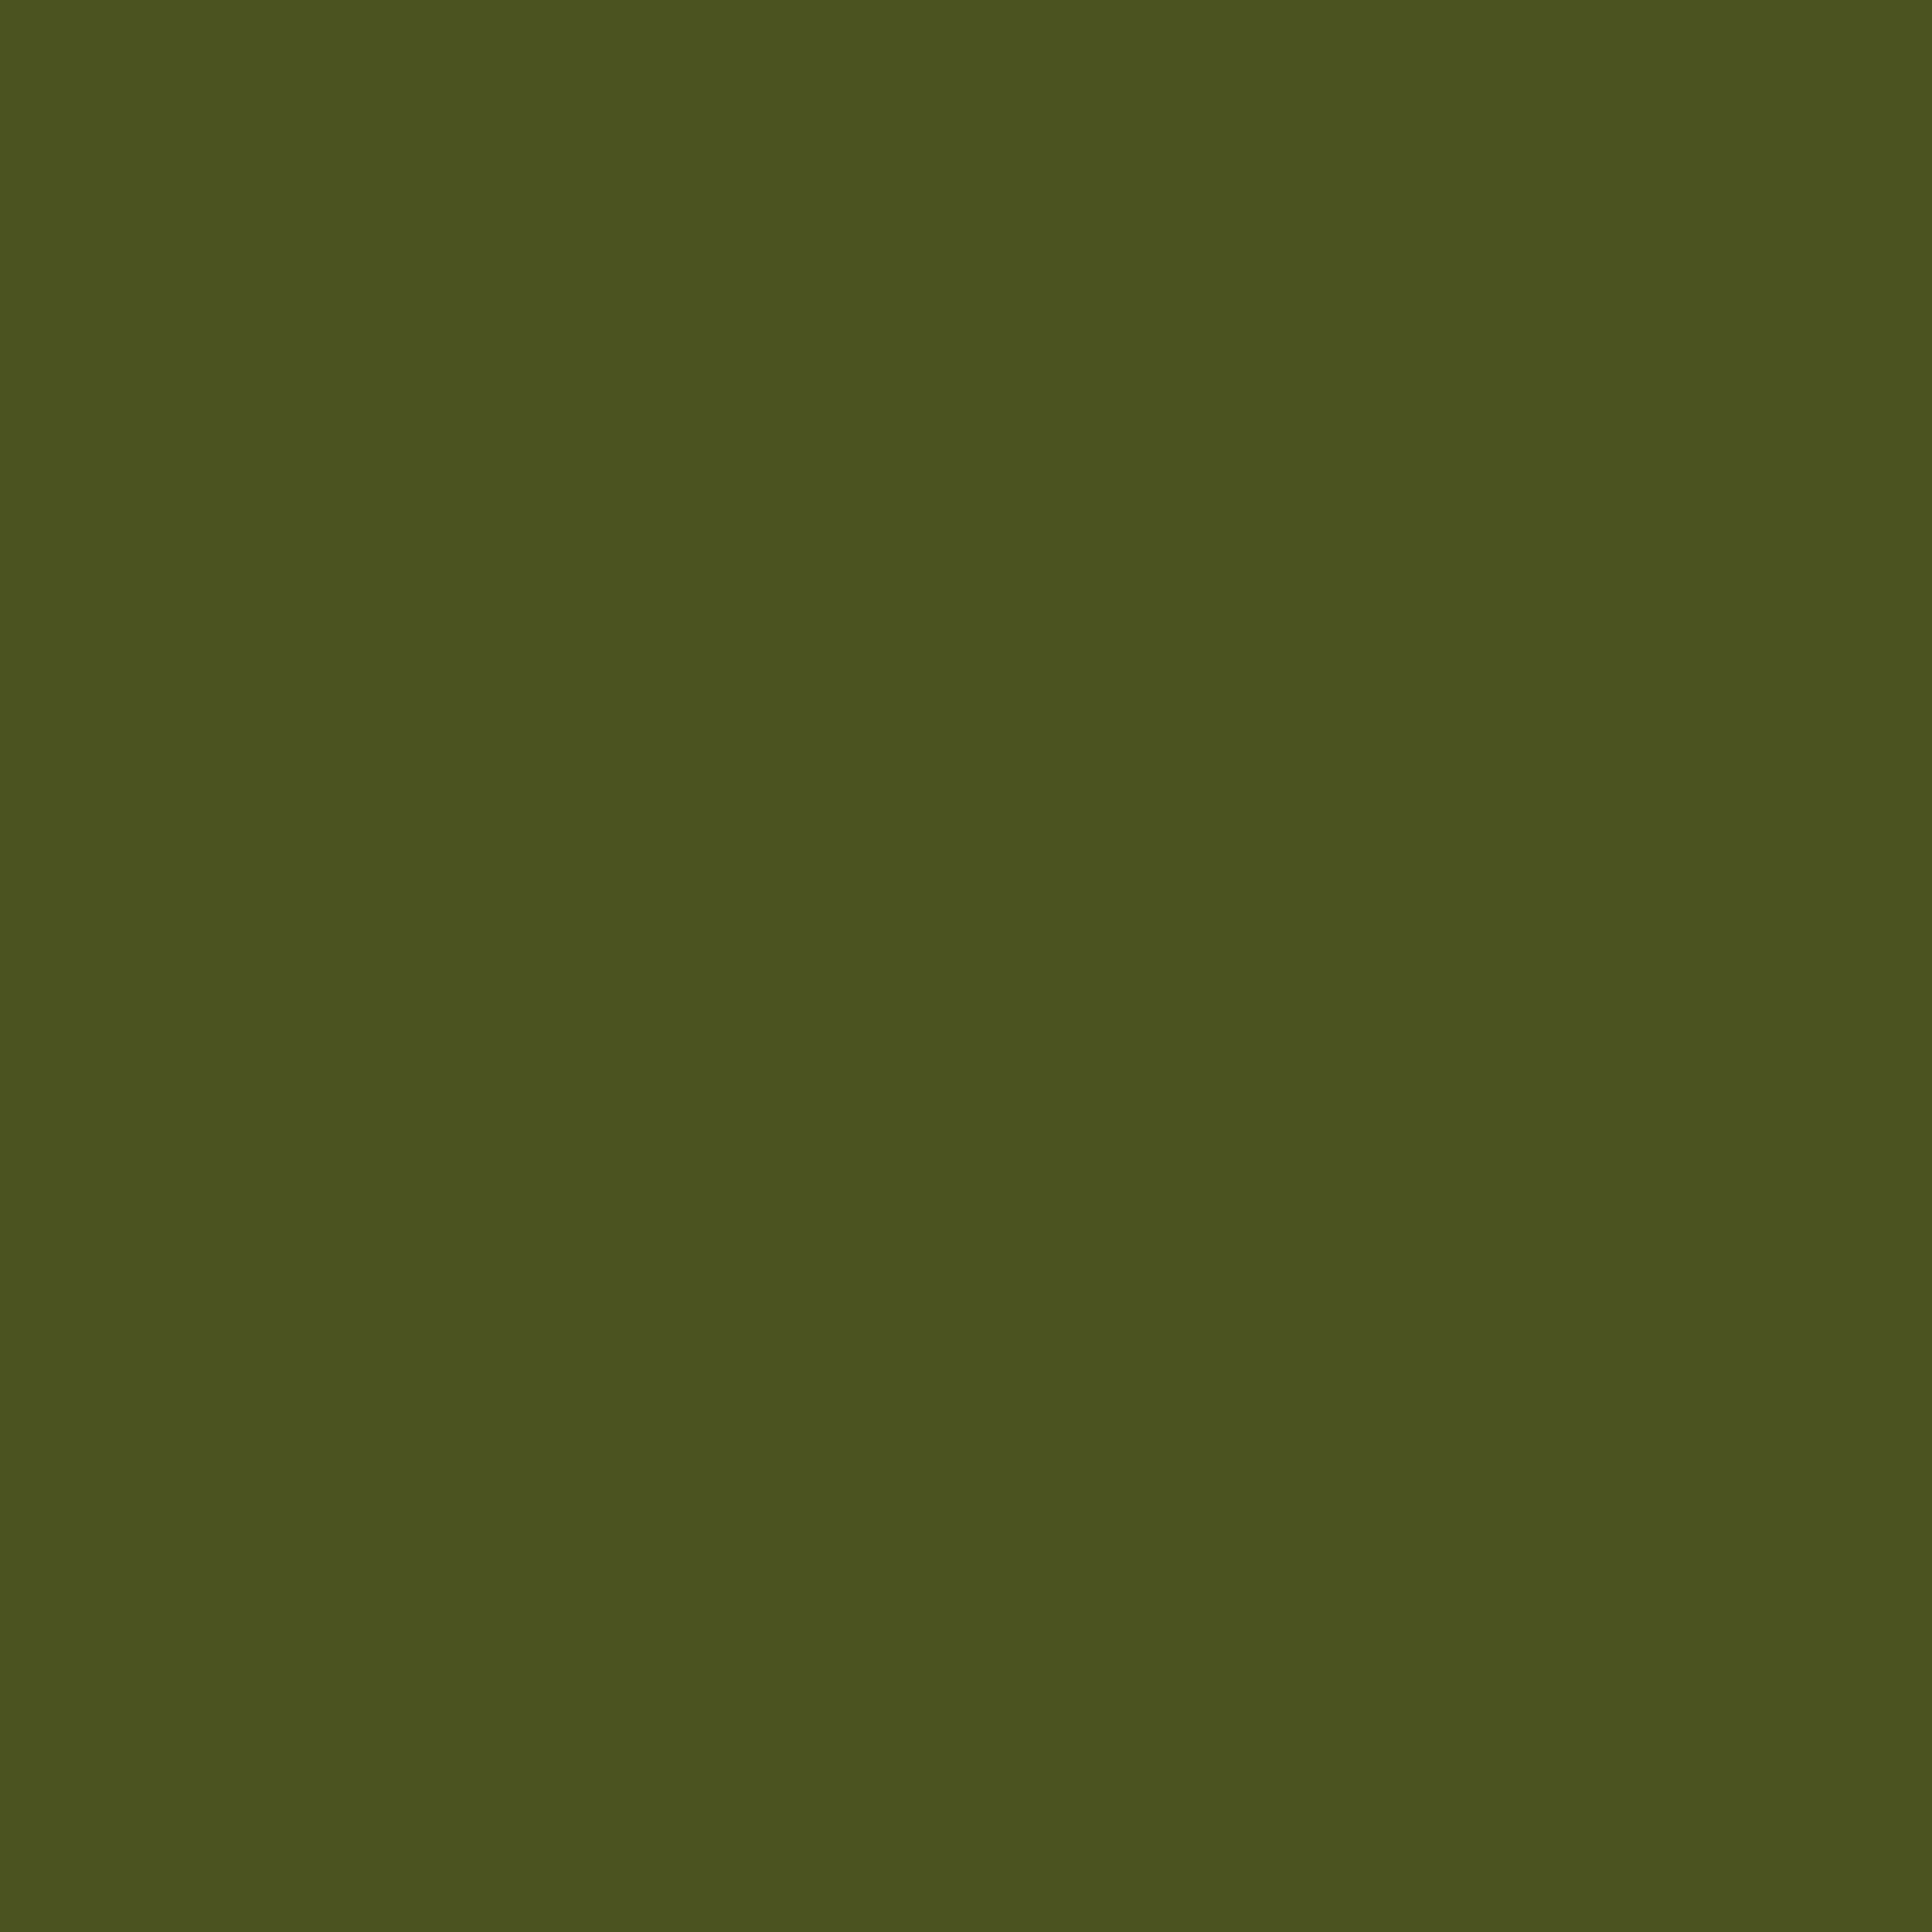 2732x2732 Army Green Solid Color Background